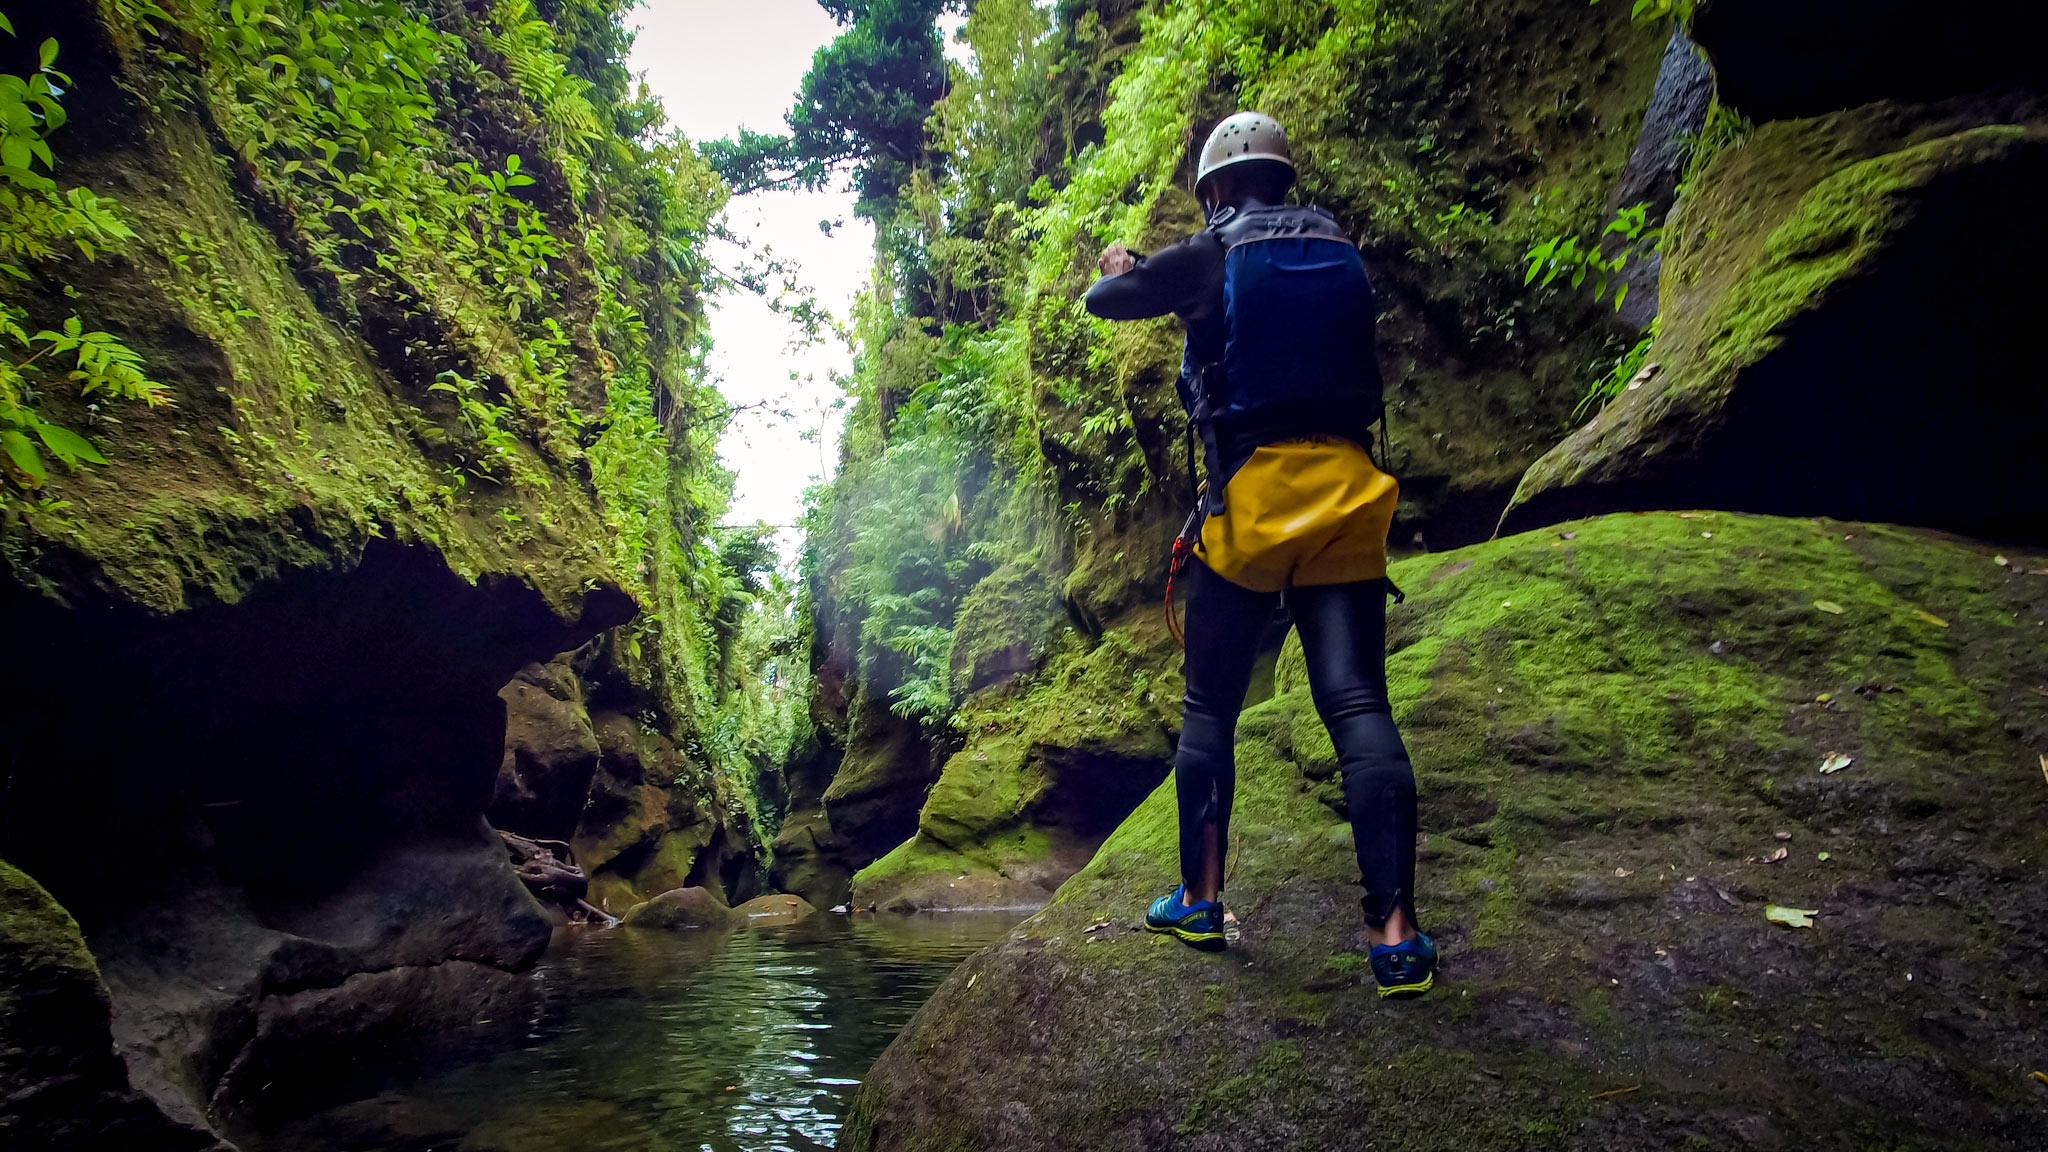 A man stands in a green moss covered canyon taking a photo in Dominica